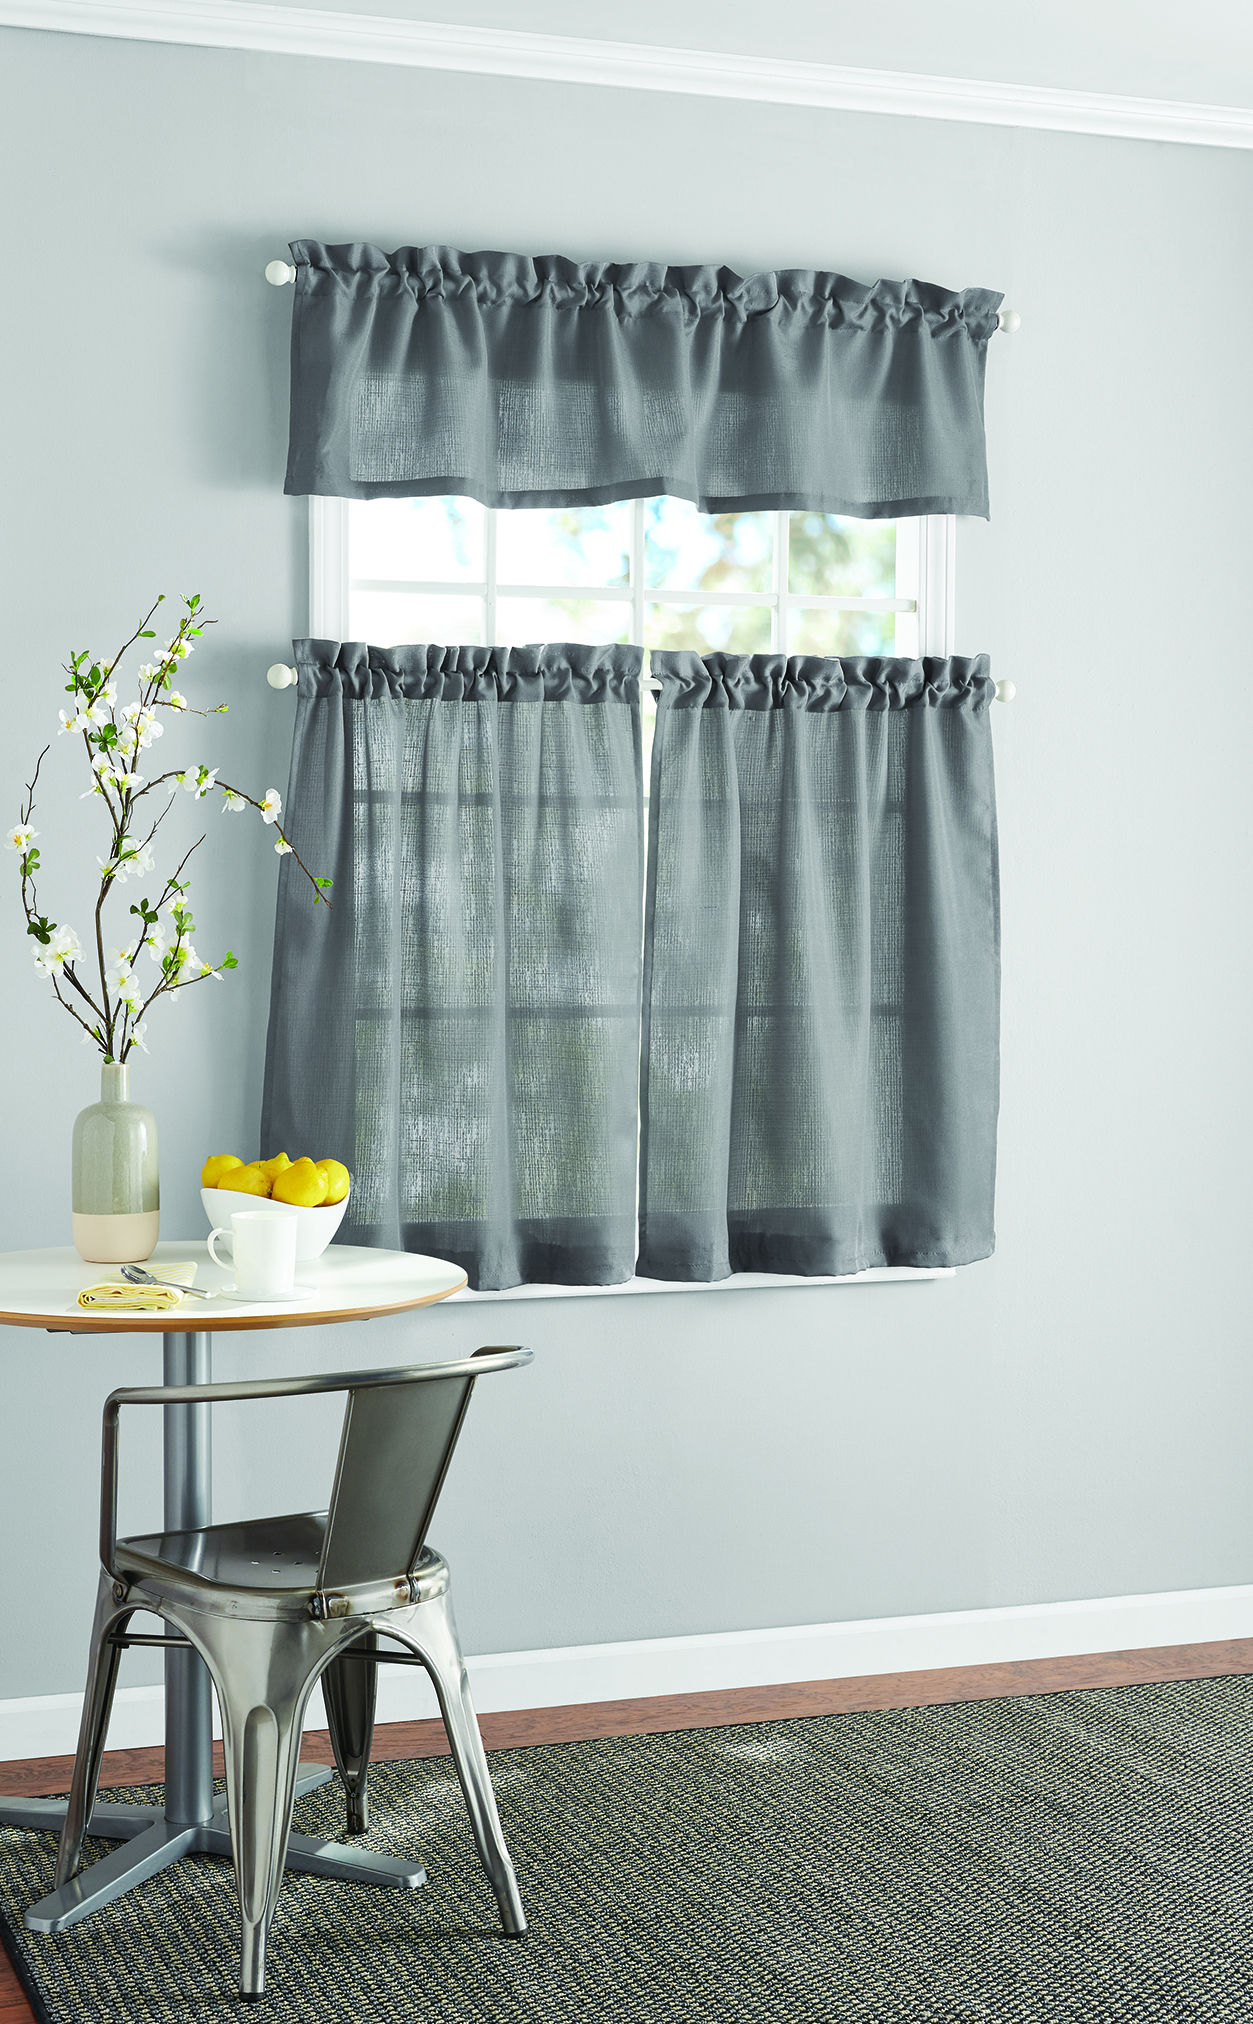 Mainstays Solid Kitchen Window Curtain Tier And Valance Set With Regard To Tree Branch Valance And Tiers Sets (View 13 of 20)